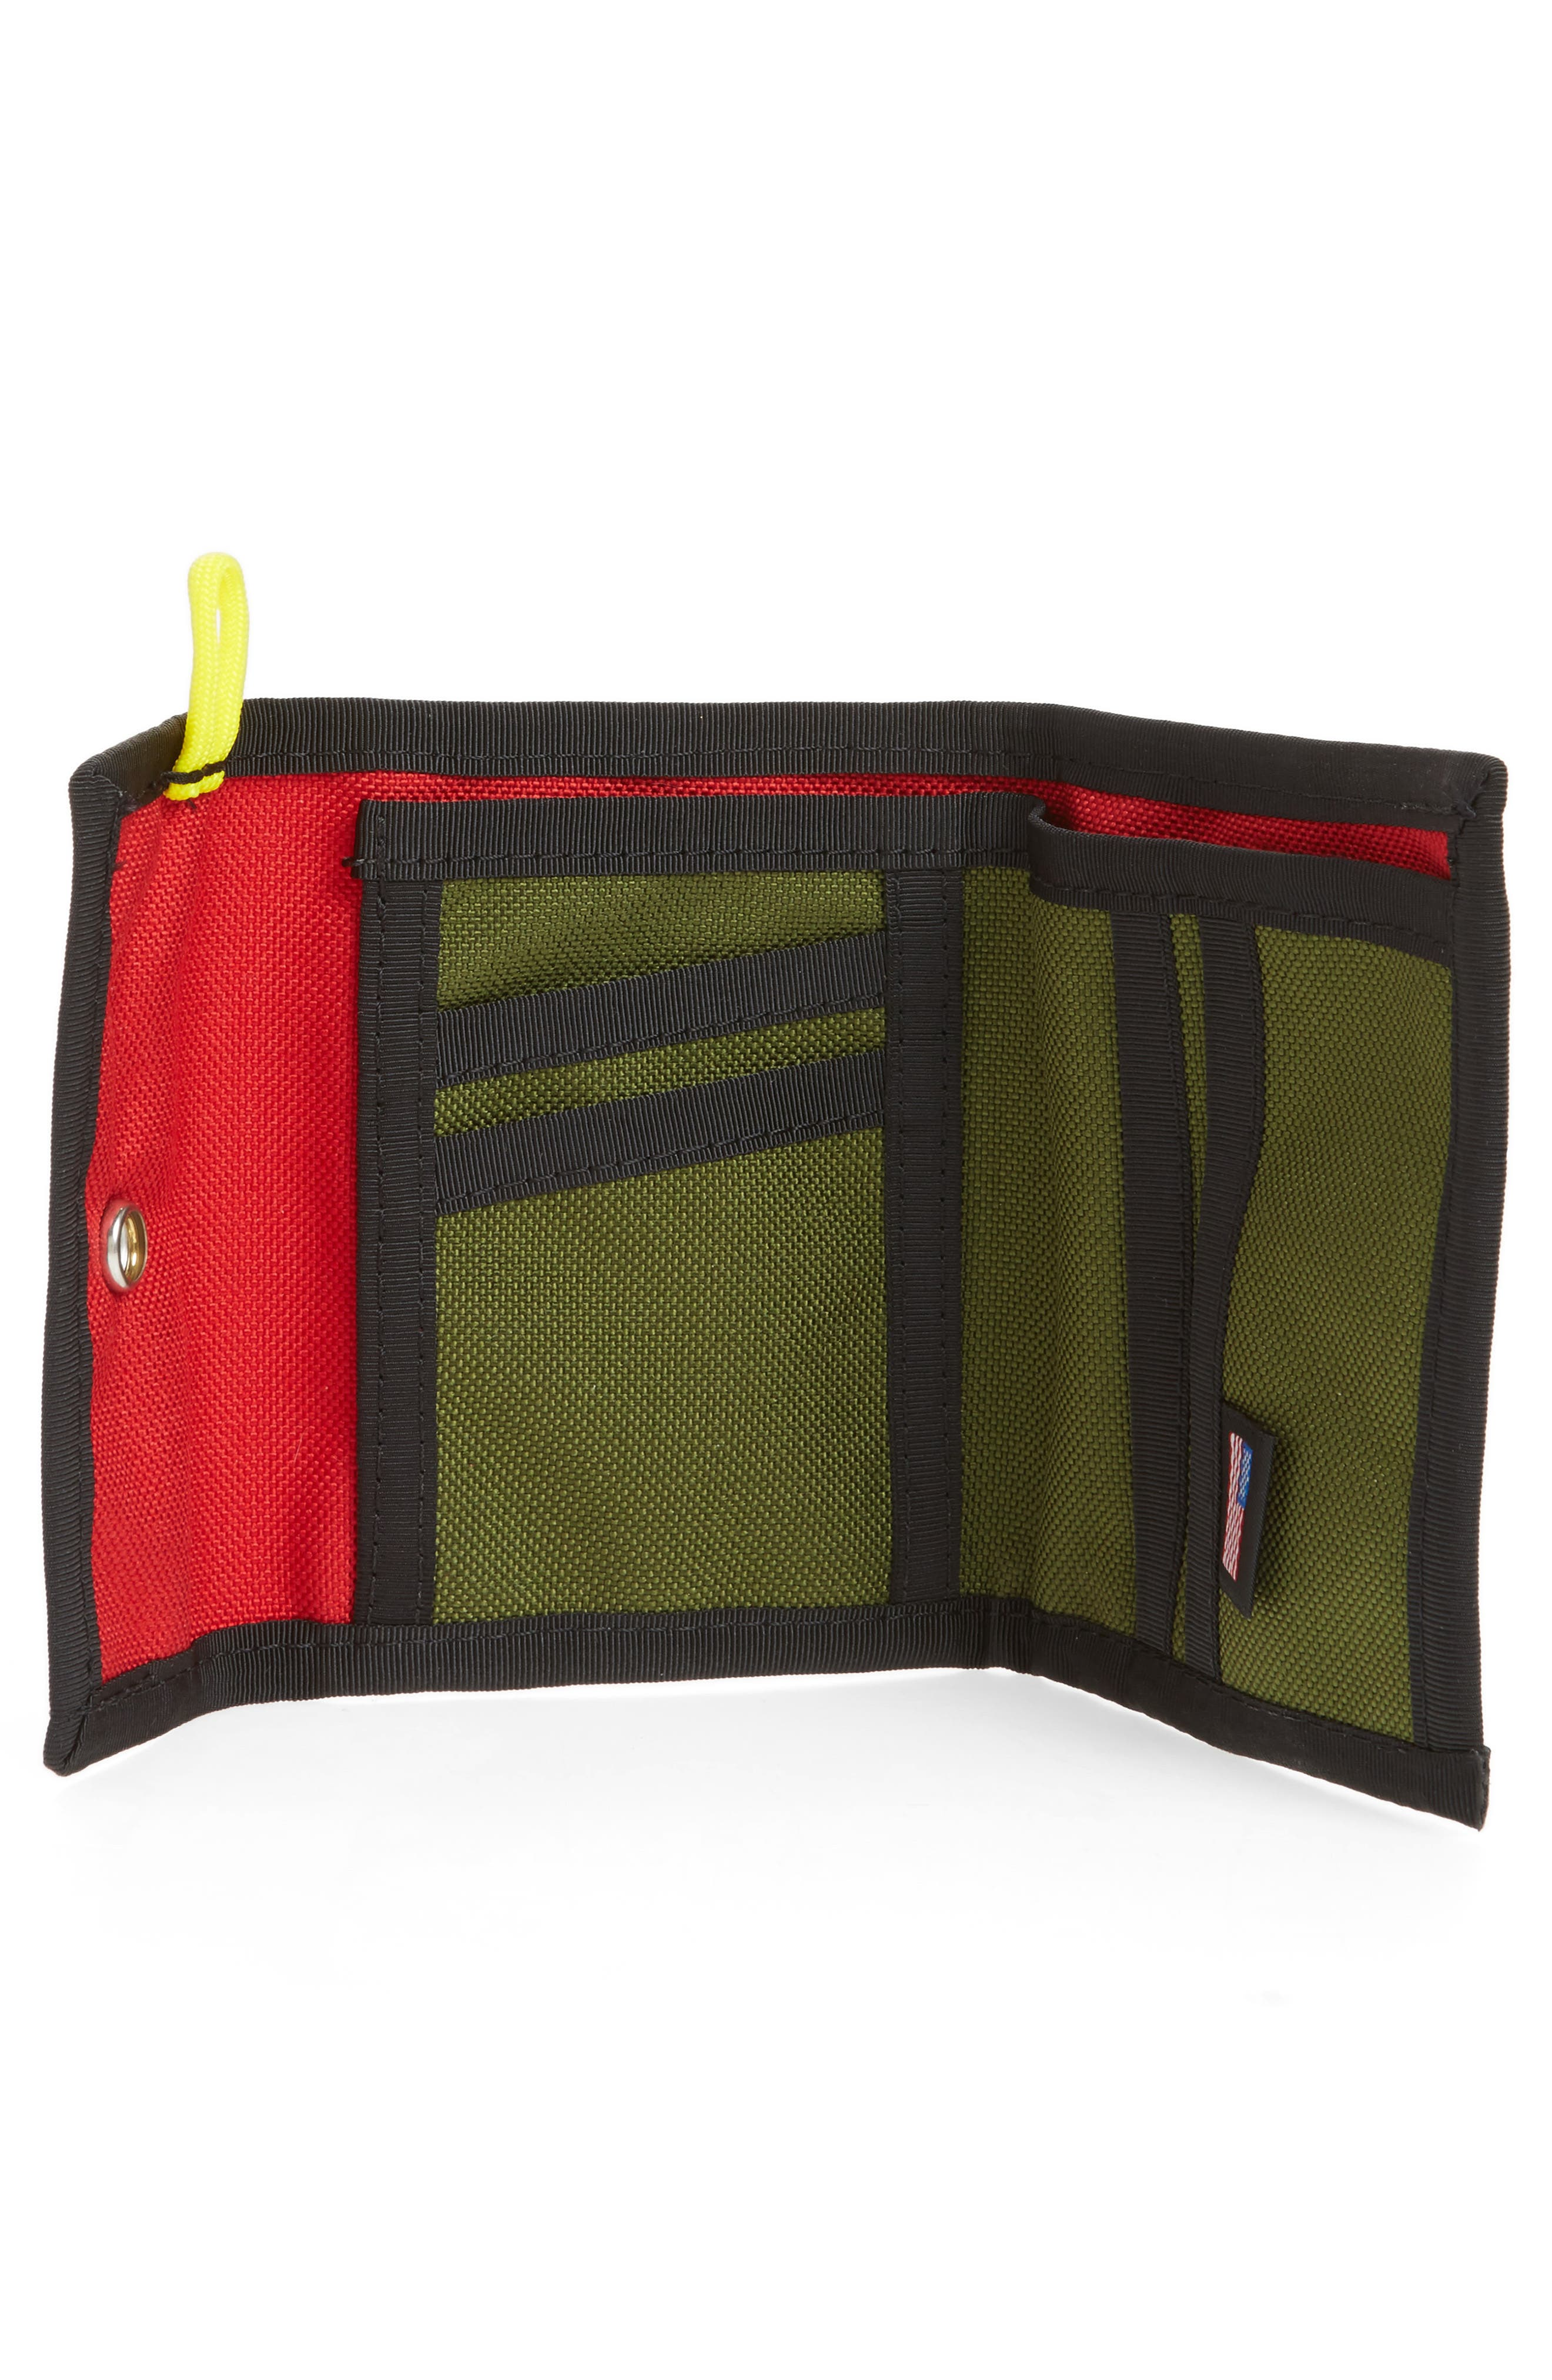 Snap Wallet,                             Alternate thumbnail 2, color,                             Red/ Olive